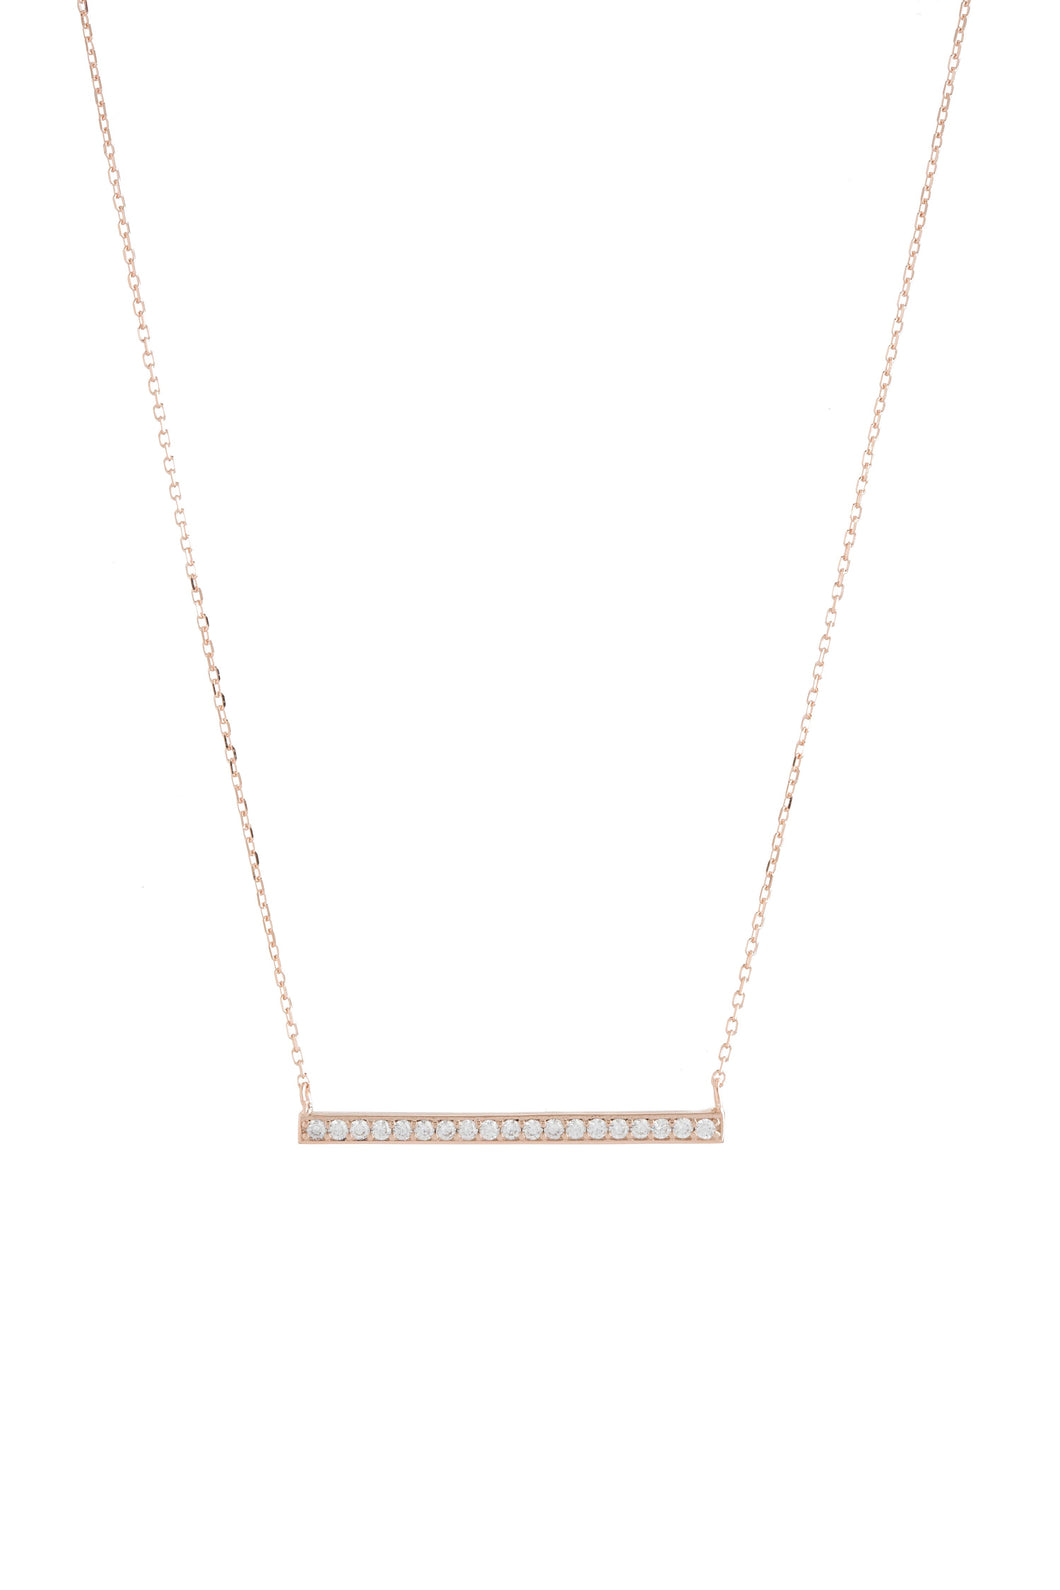 BAR LARGE CZ NECKLACE